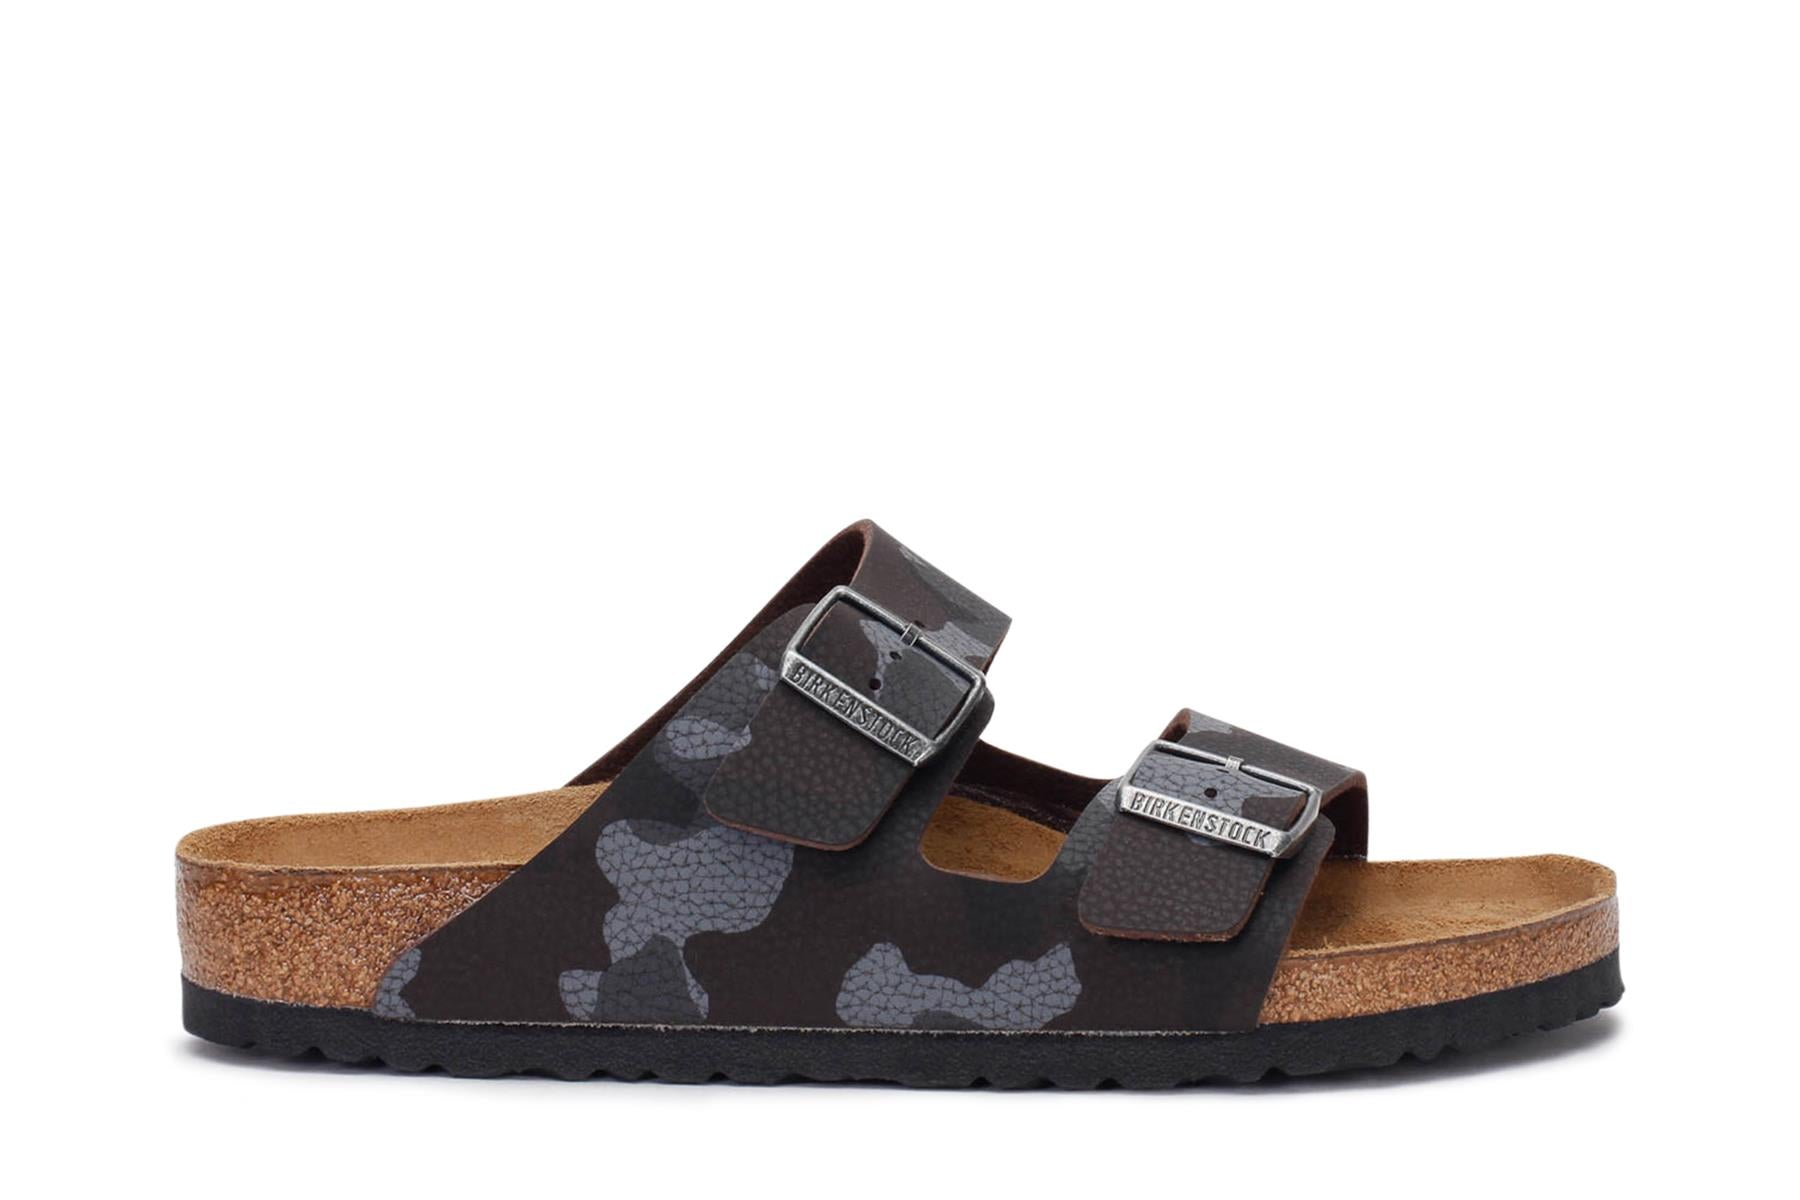 birkenstock-mens-slide-sandals-arizona-bs-desert-soil-camo-brown-1013015-main